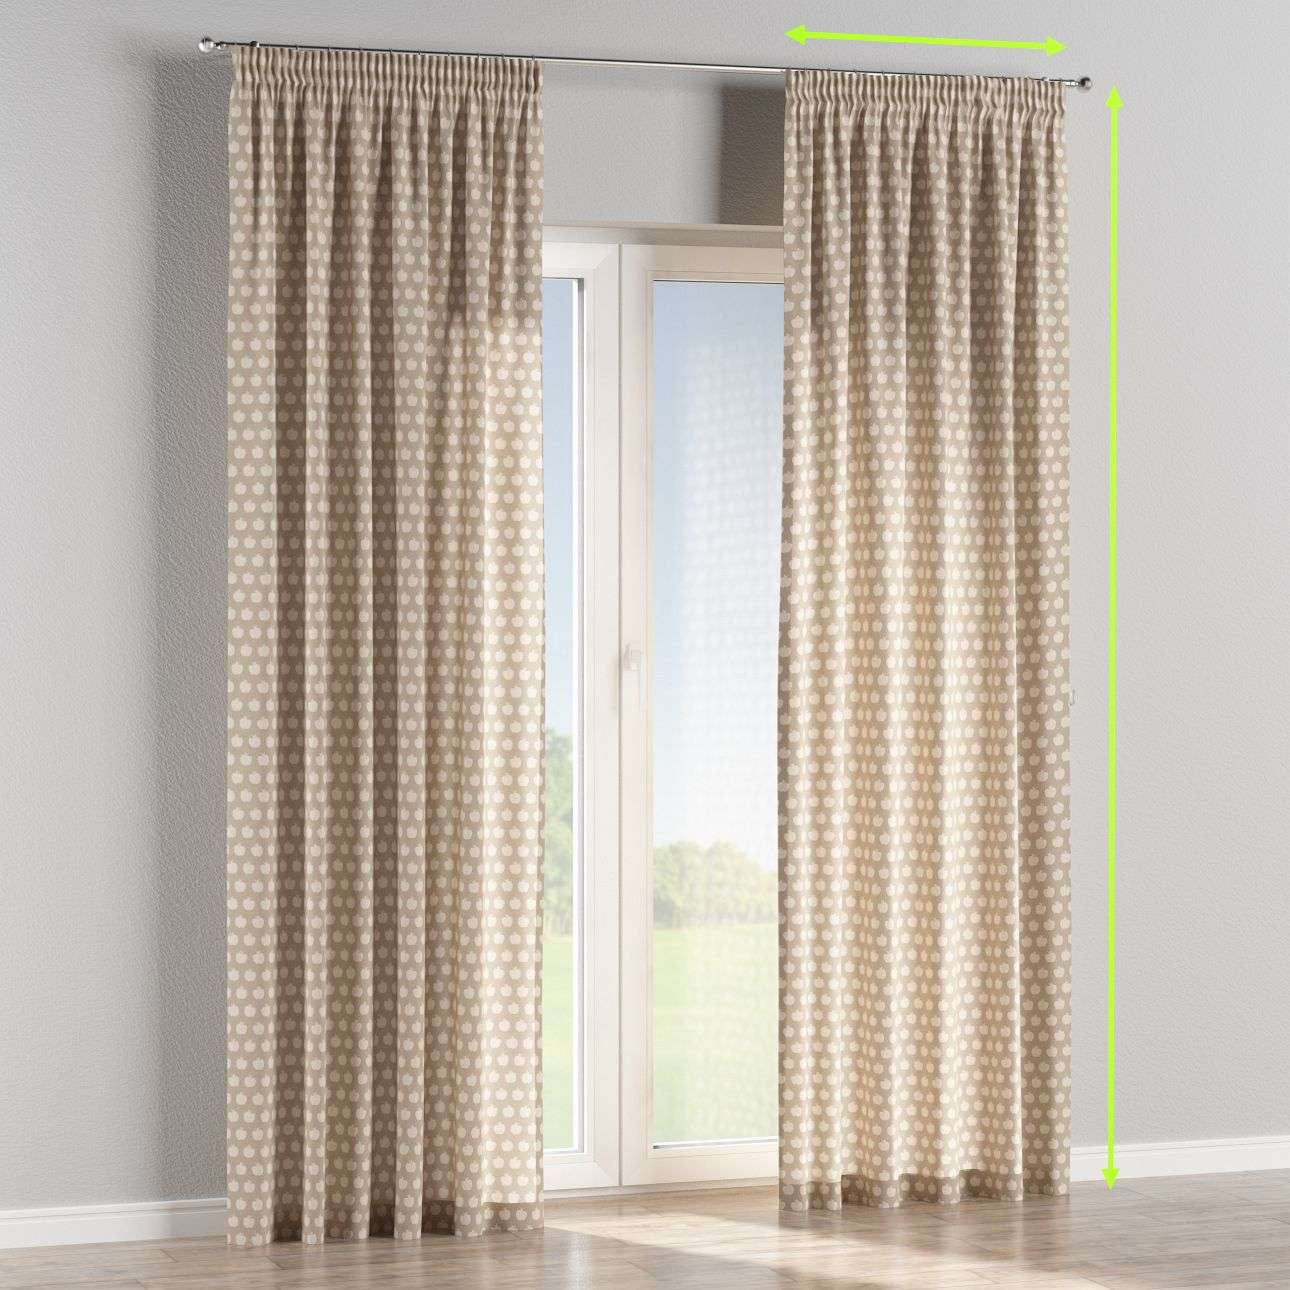 Pencil pleat curtains in collection Flowers, fabric: 140-55